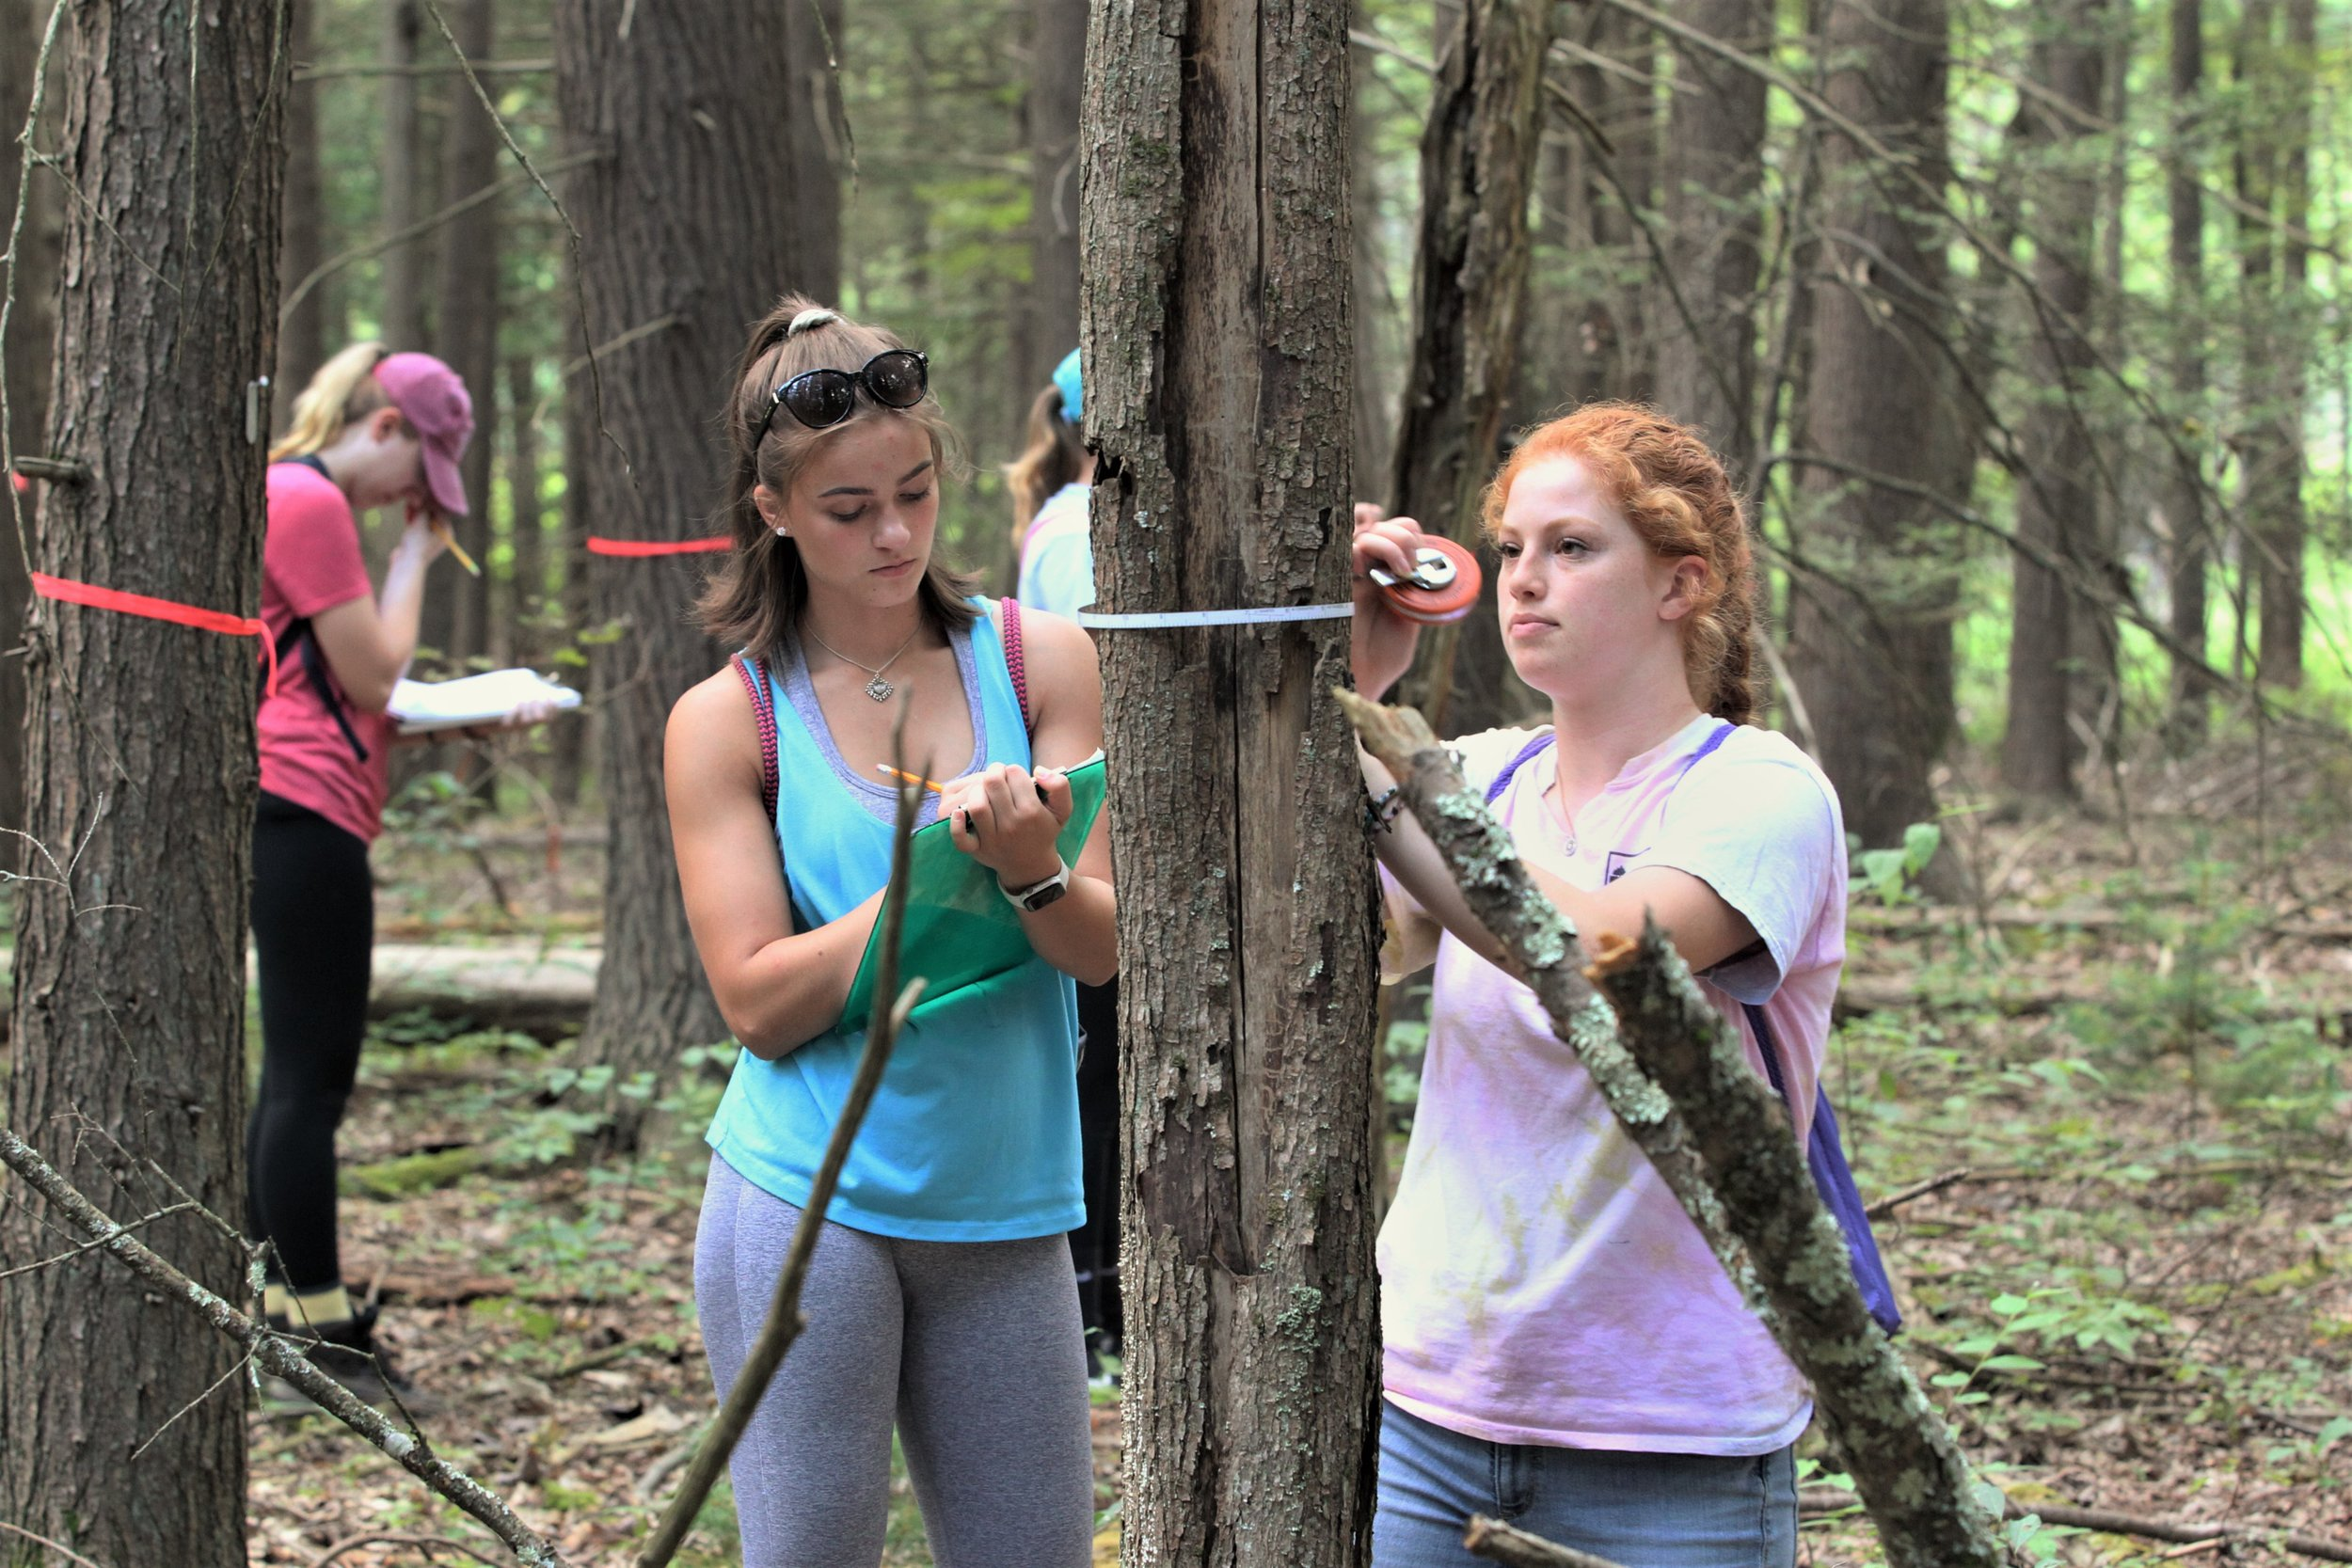 Students in The University of Scranton's Magis Honors Program in STEM participated in a community research project at the Lacawac Sanctuary in the Poconos to study the local deer population and their impact on trees (photo by The University of Scranton)